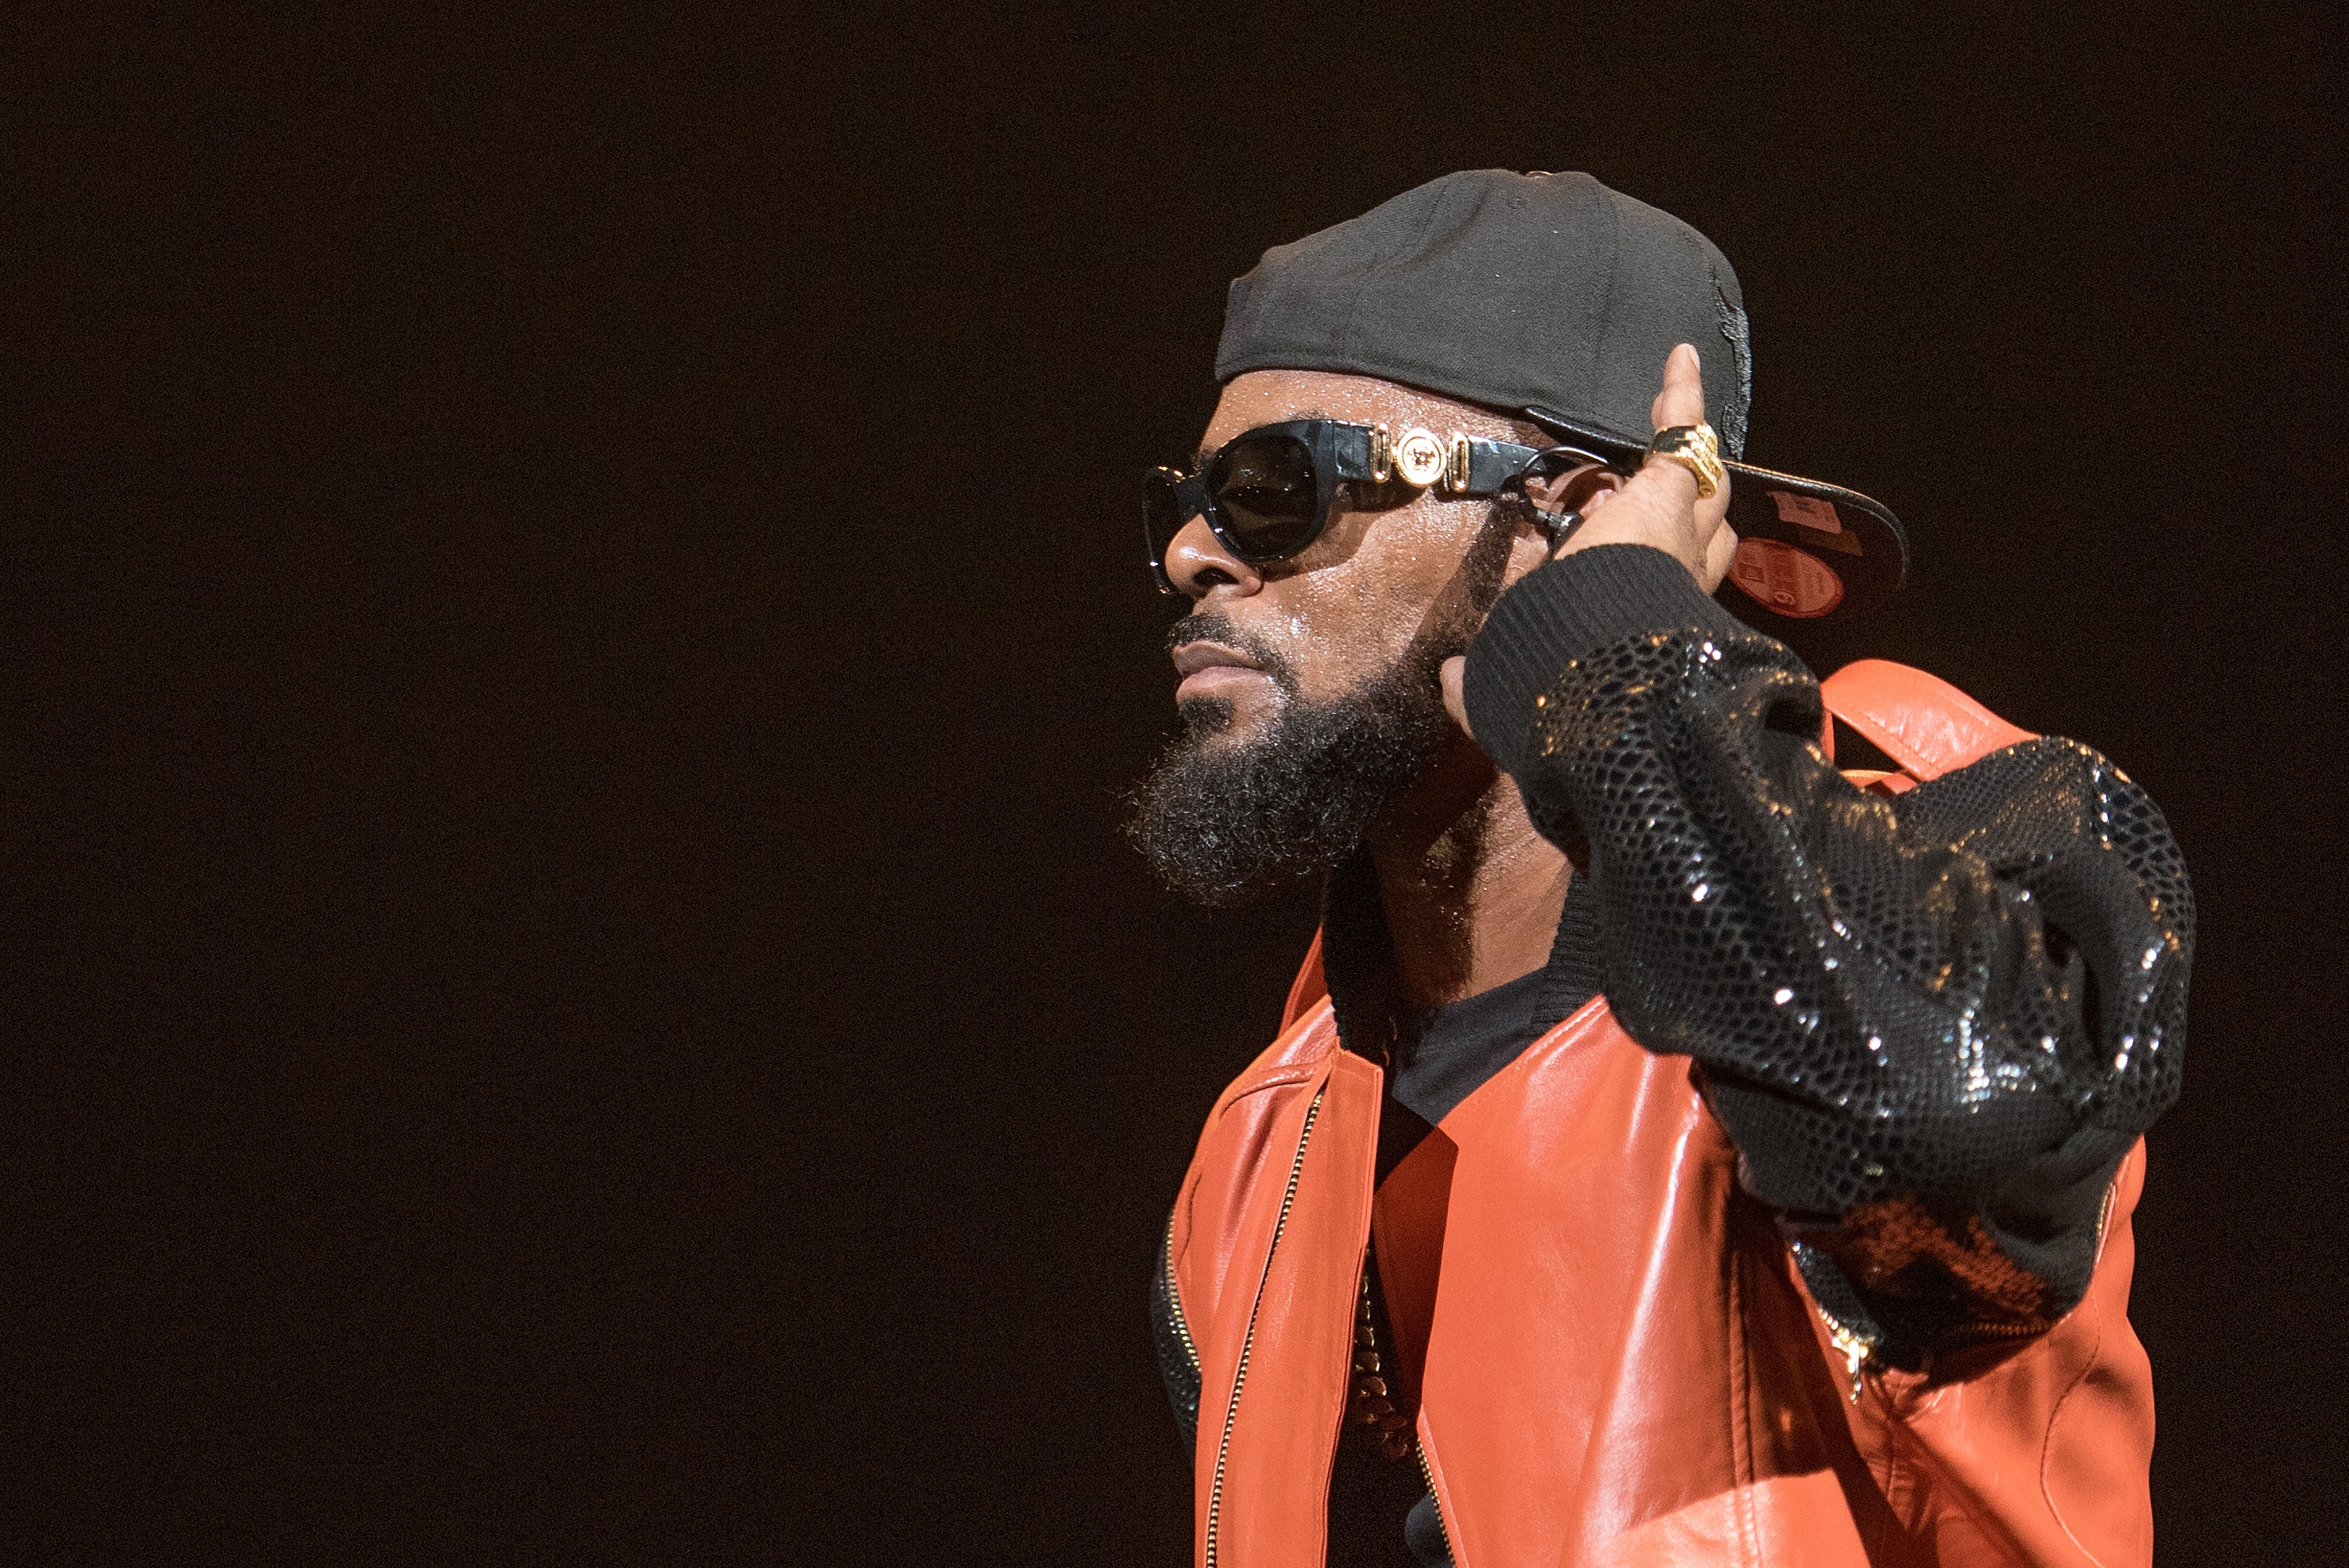 R Kelly denies all allegations of sexual misconduct and abusive treatment